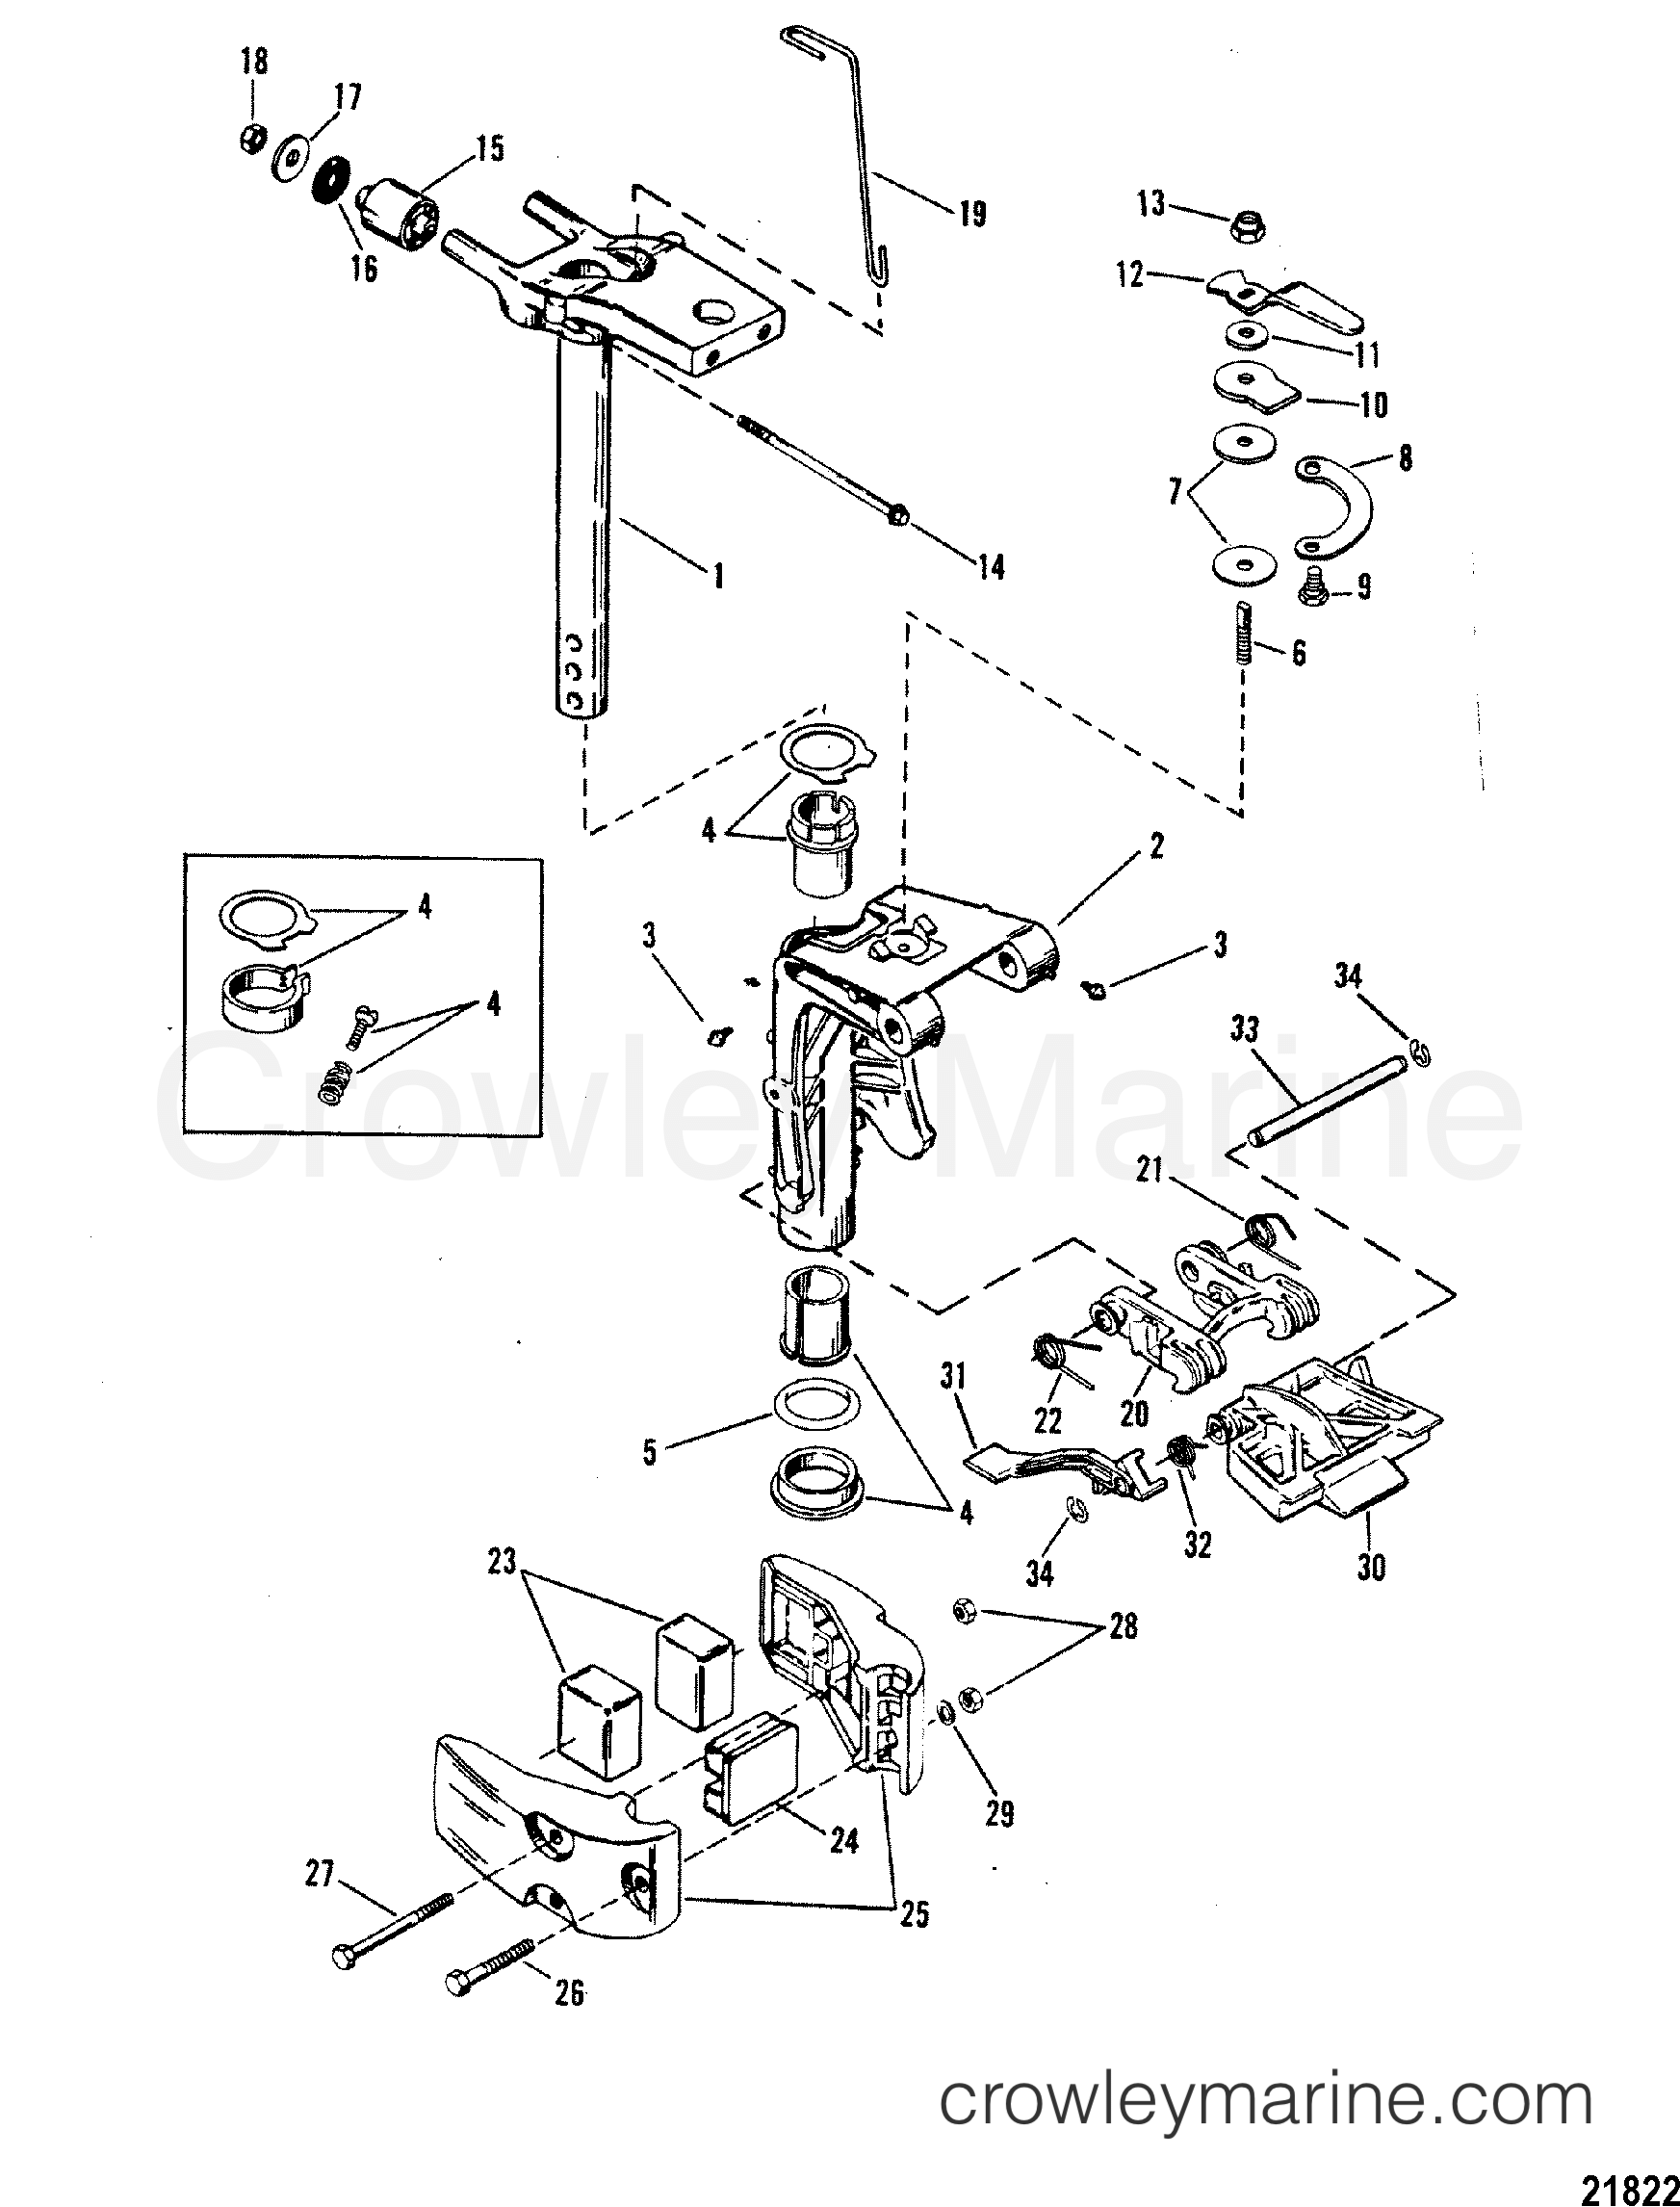 1988 Mercury Outboard 25 [E] - 1025302BC - SWIVEL BRACKET ASSEMBLY section